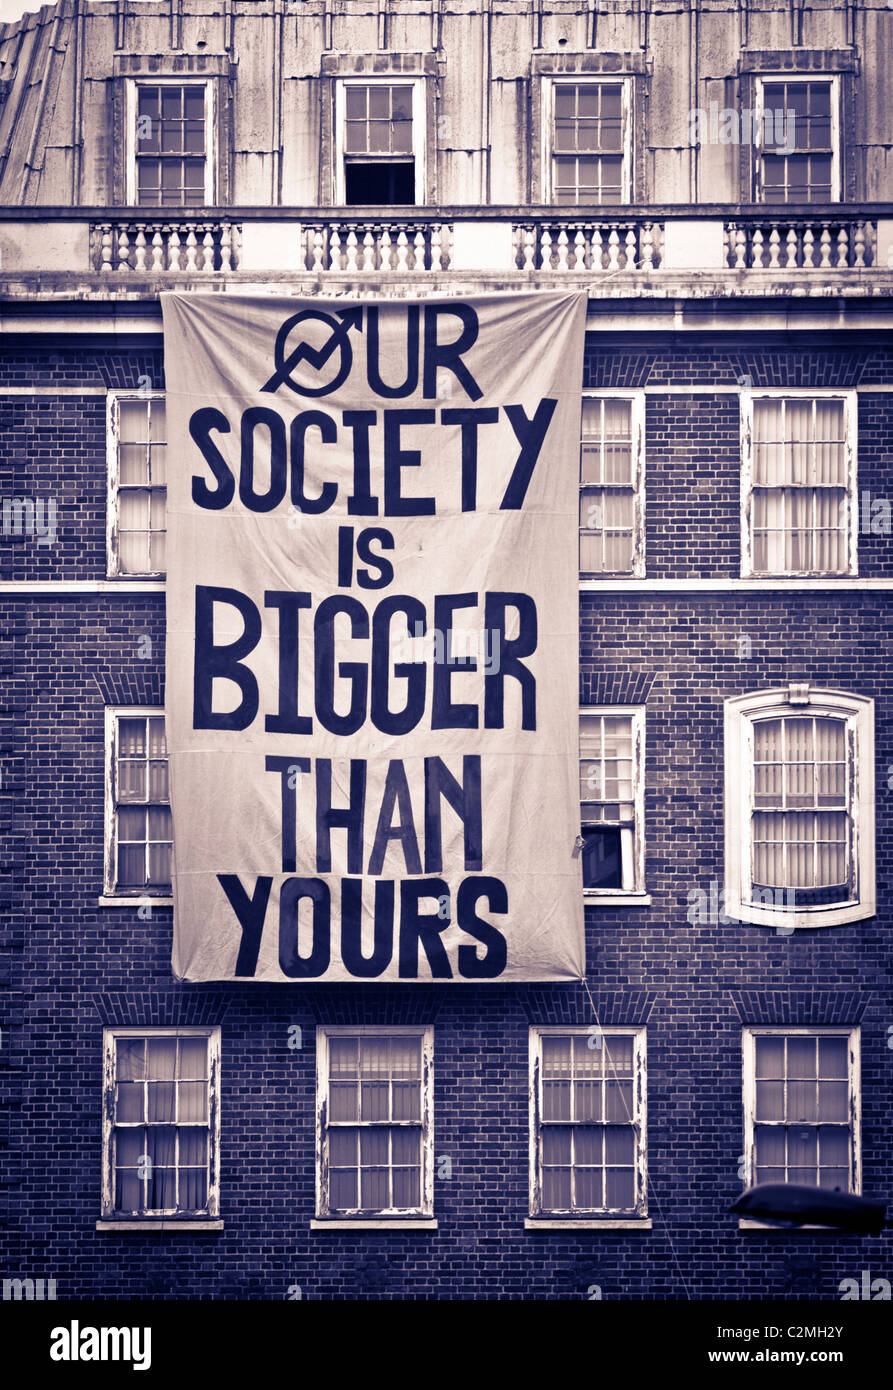 Protest banner on building in Charles Street on 26th March 2011 - the day of the TUC March through Central London - Stock Image